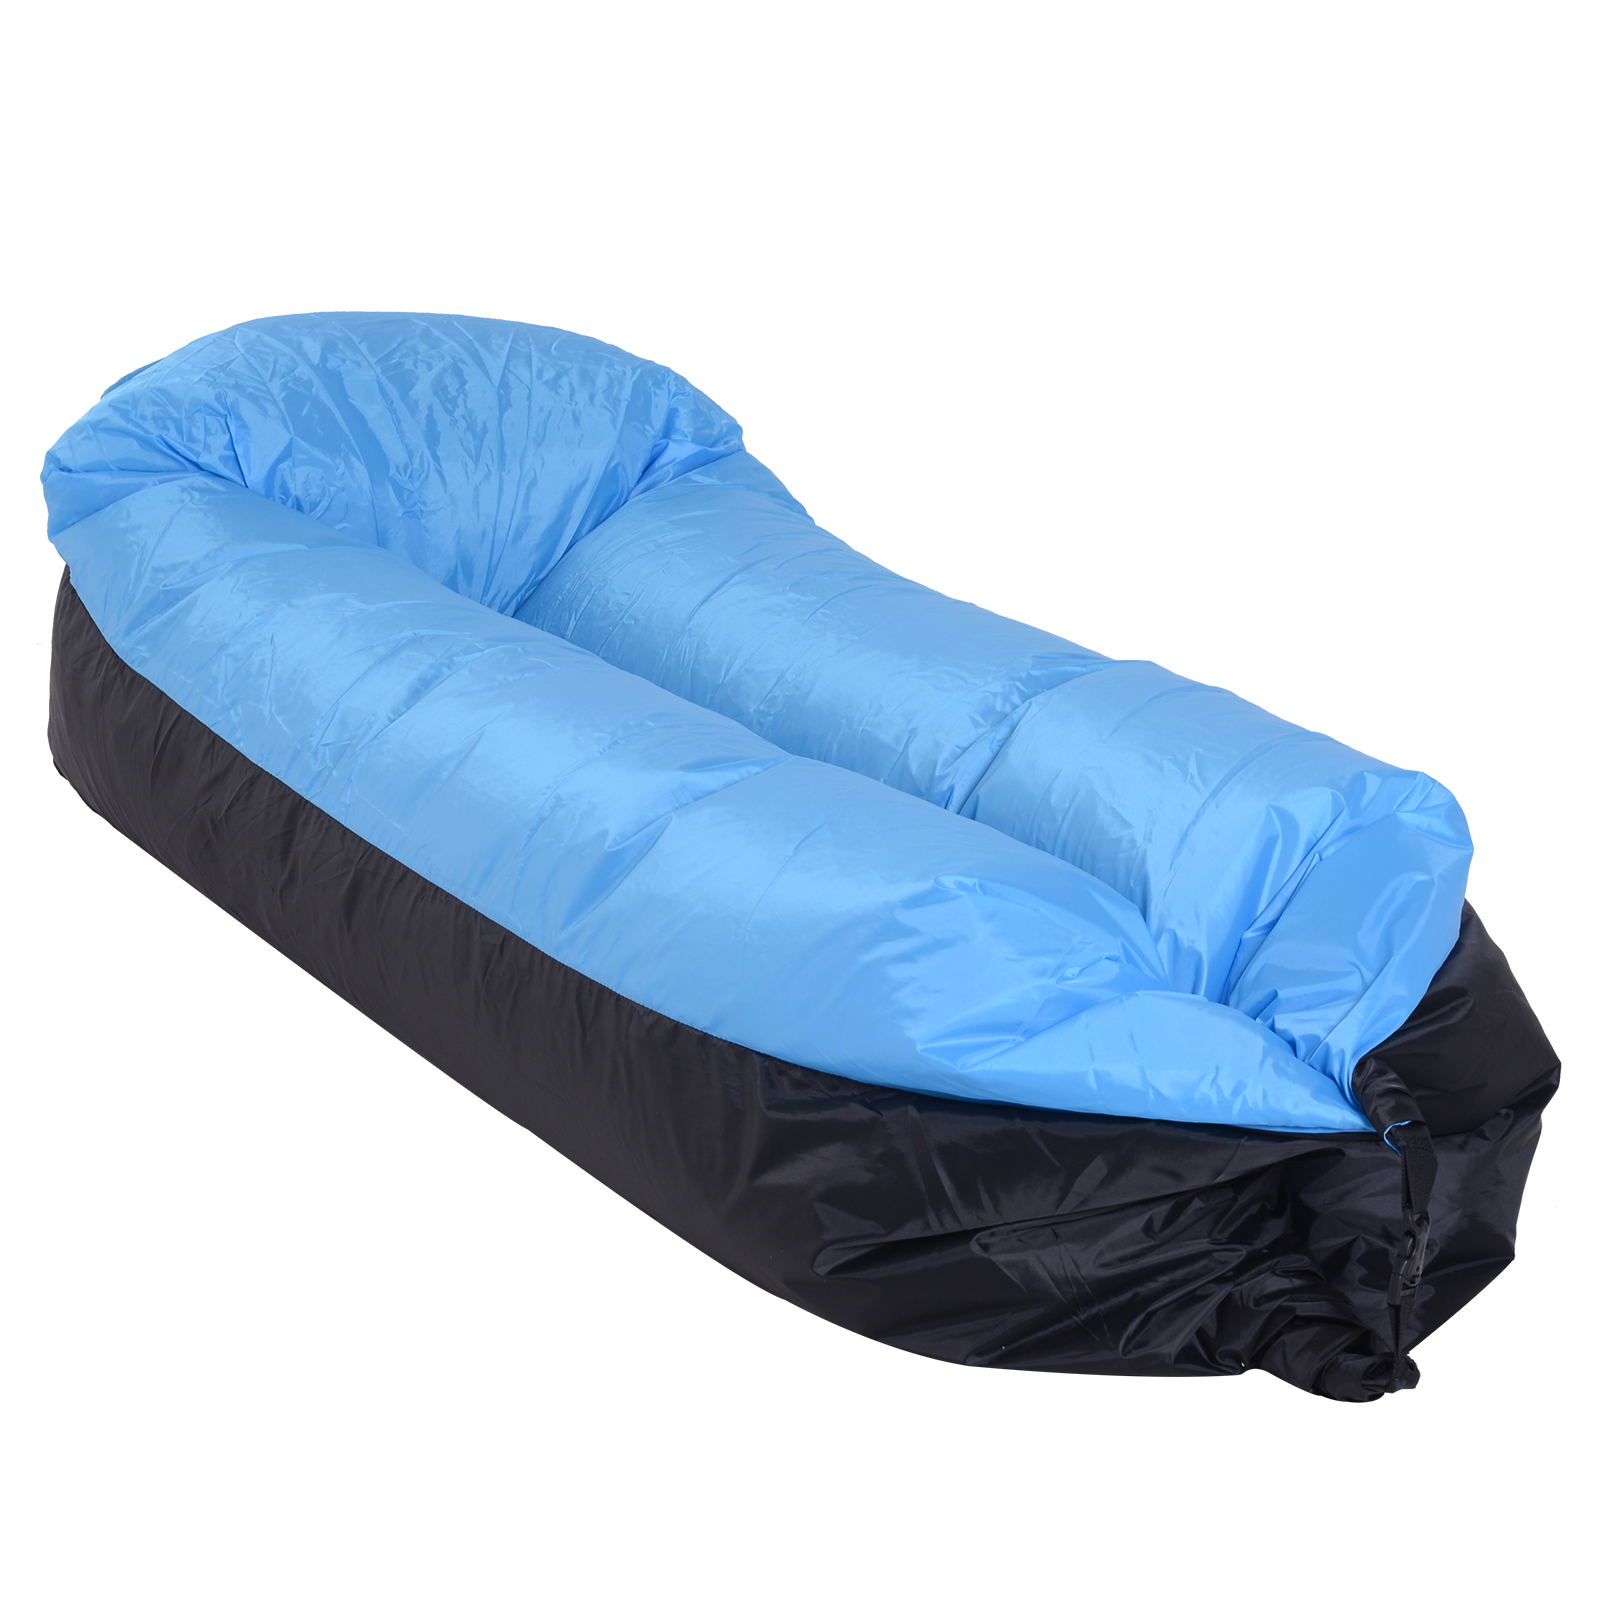 Outsunny Air Sofa Bed Inflatable Pump With Carrying Bag Max. 180 KG 185x70x52 Cm Blue